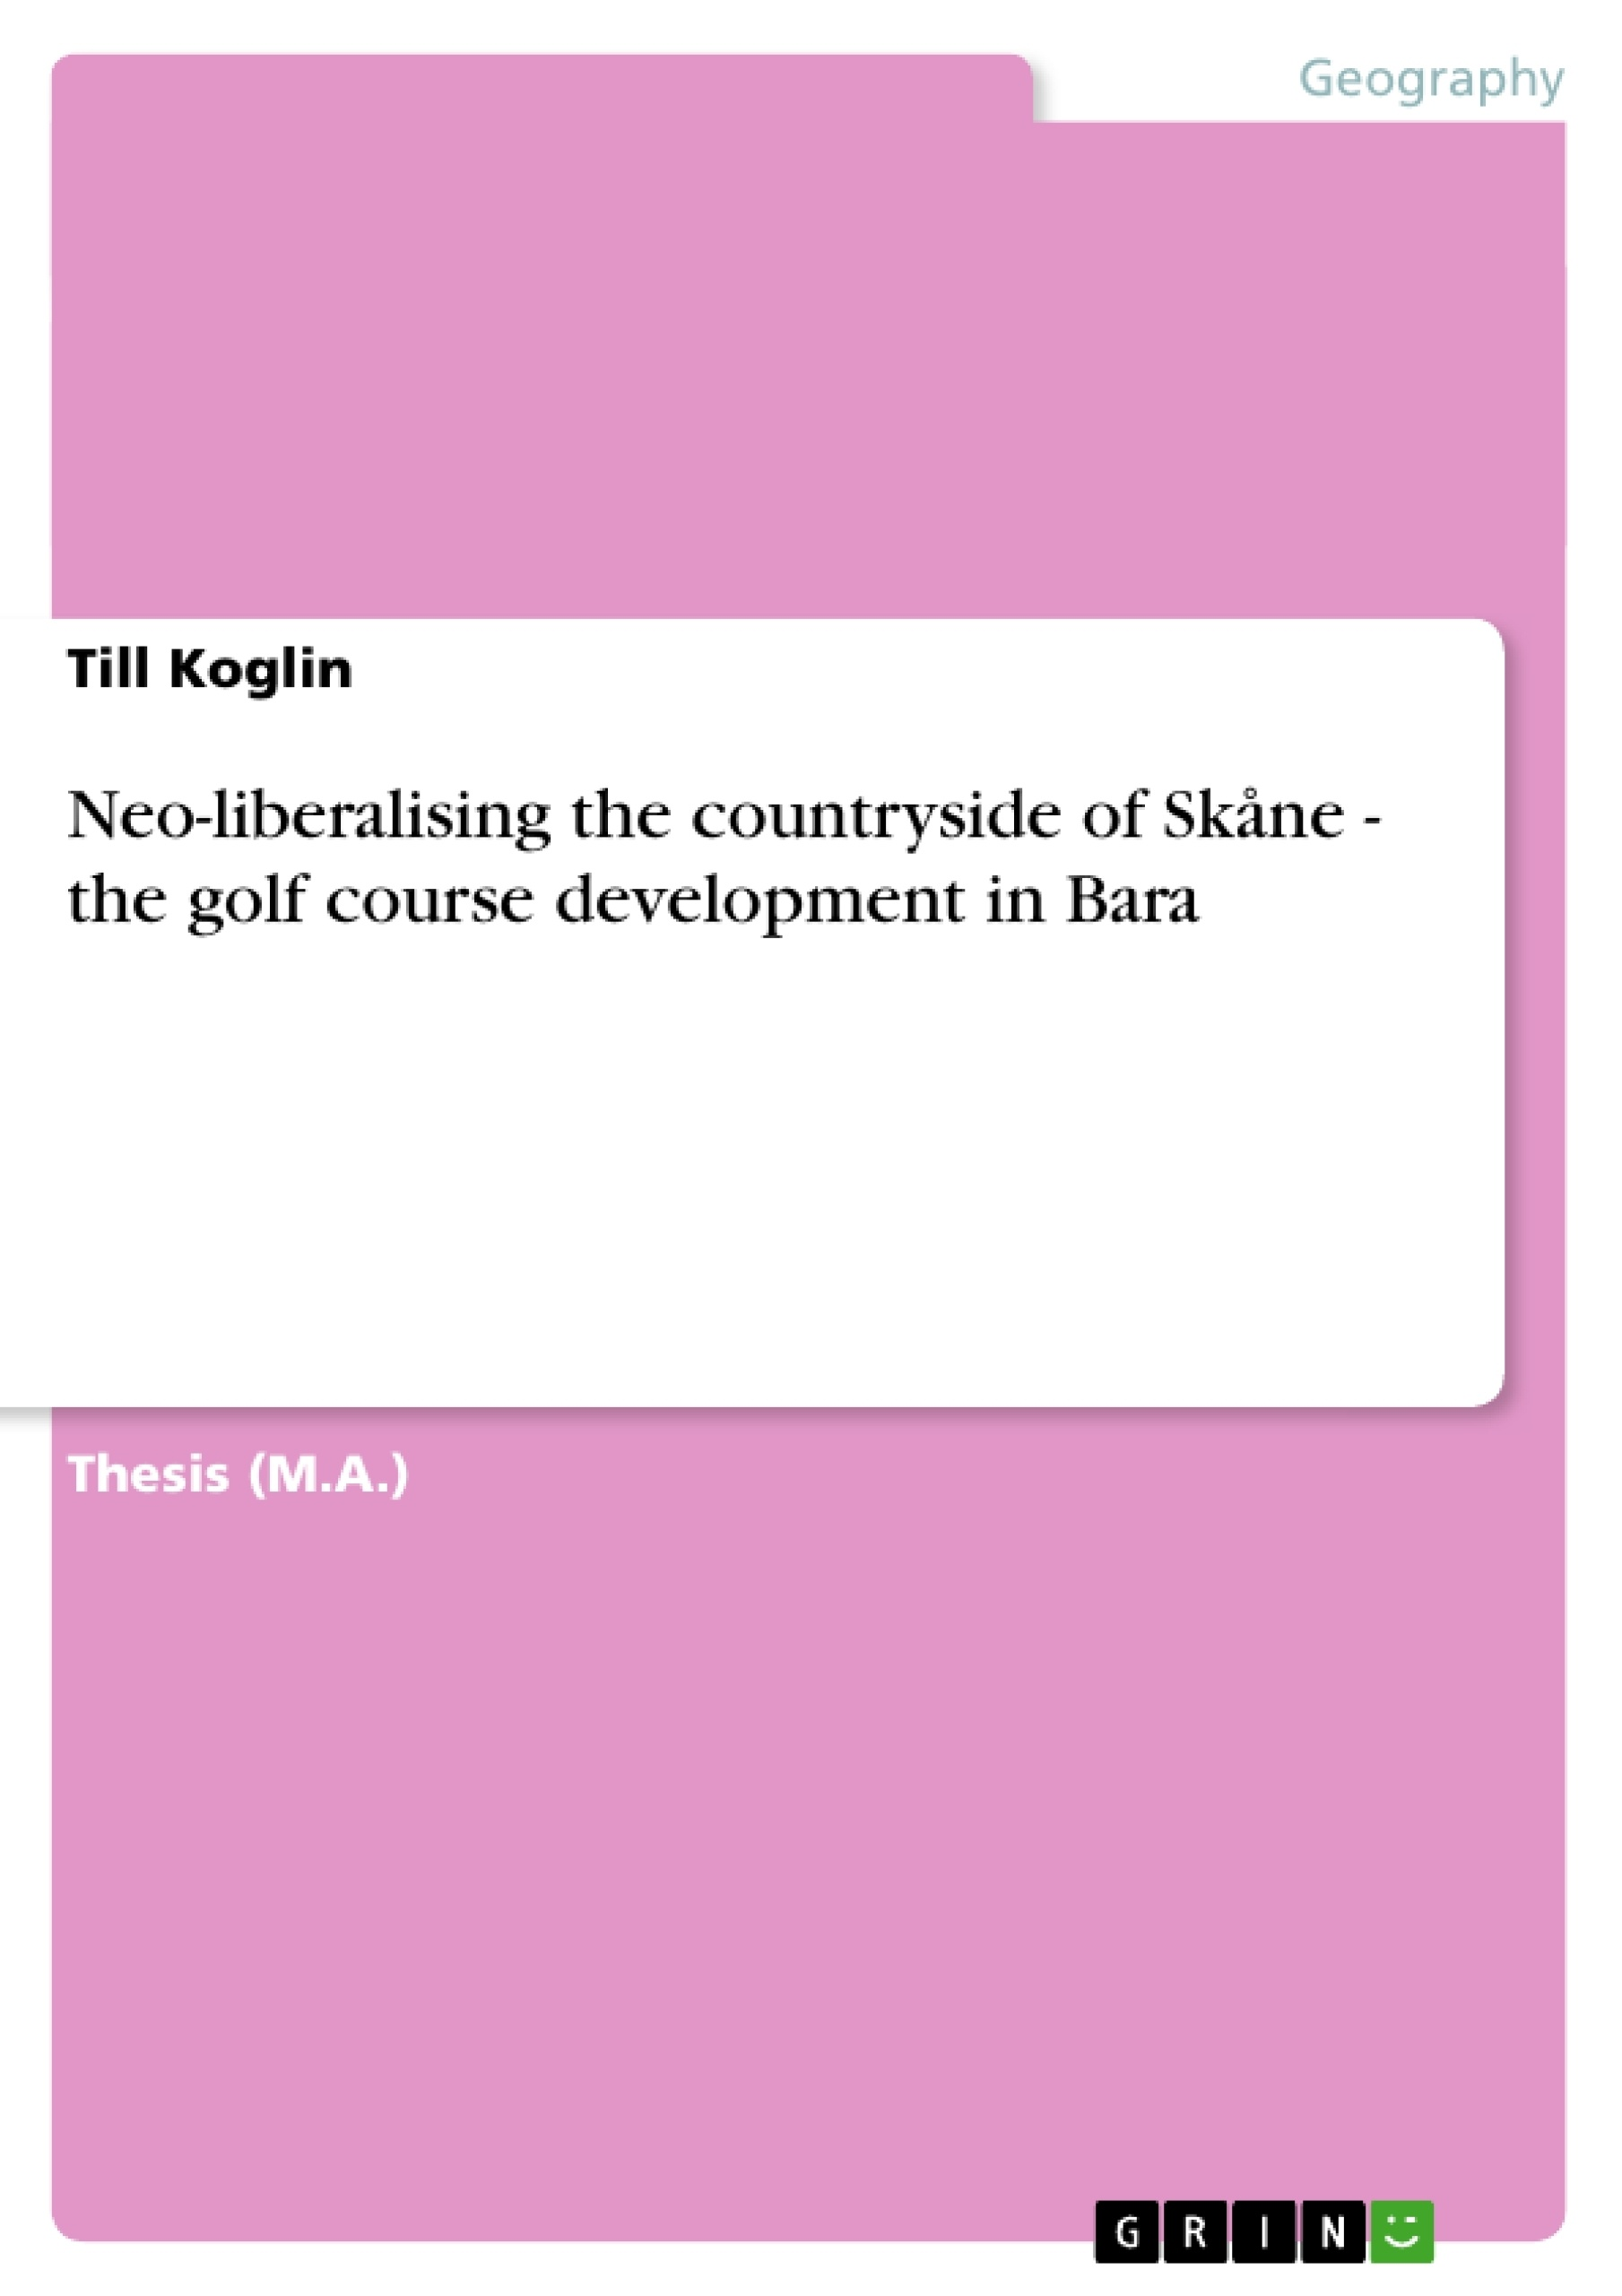 Title: Neo-liberalising the countryside of Skåne - the golf course development in Bara